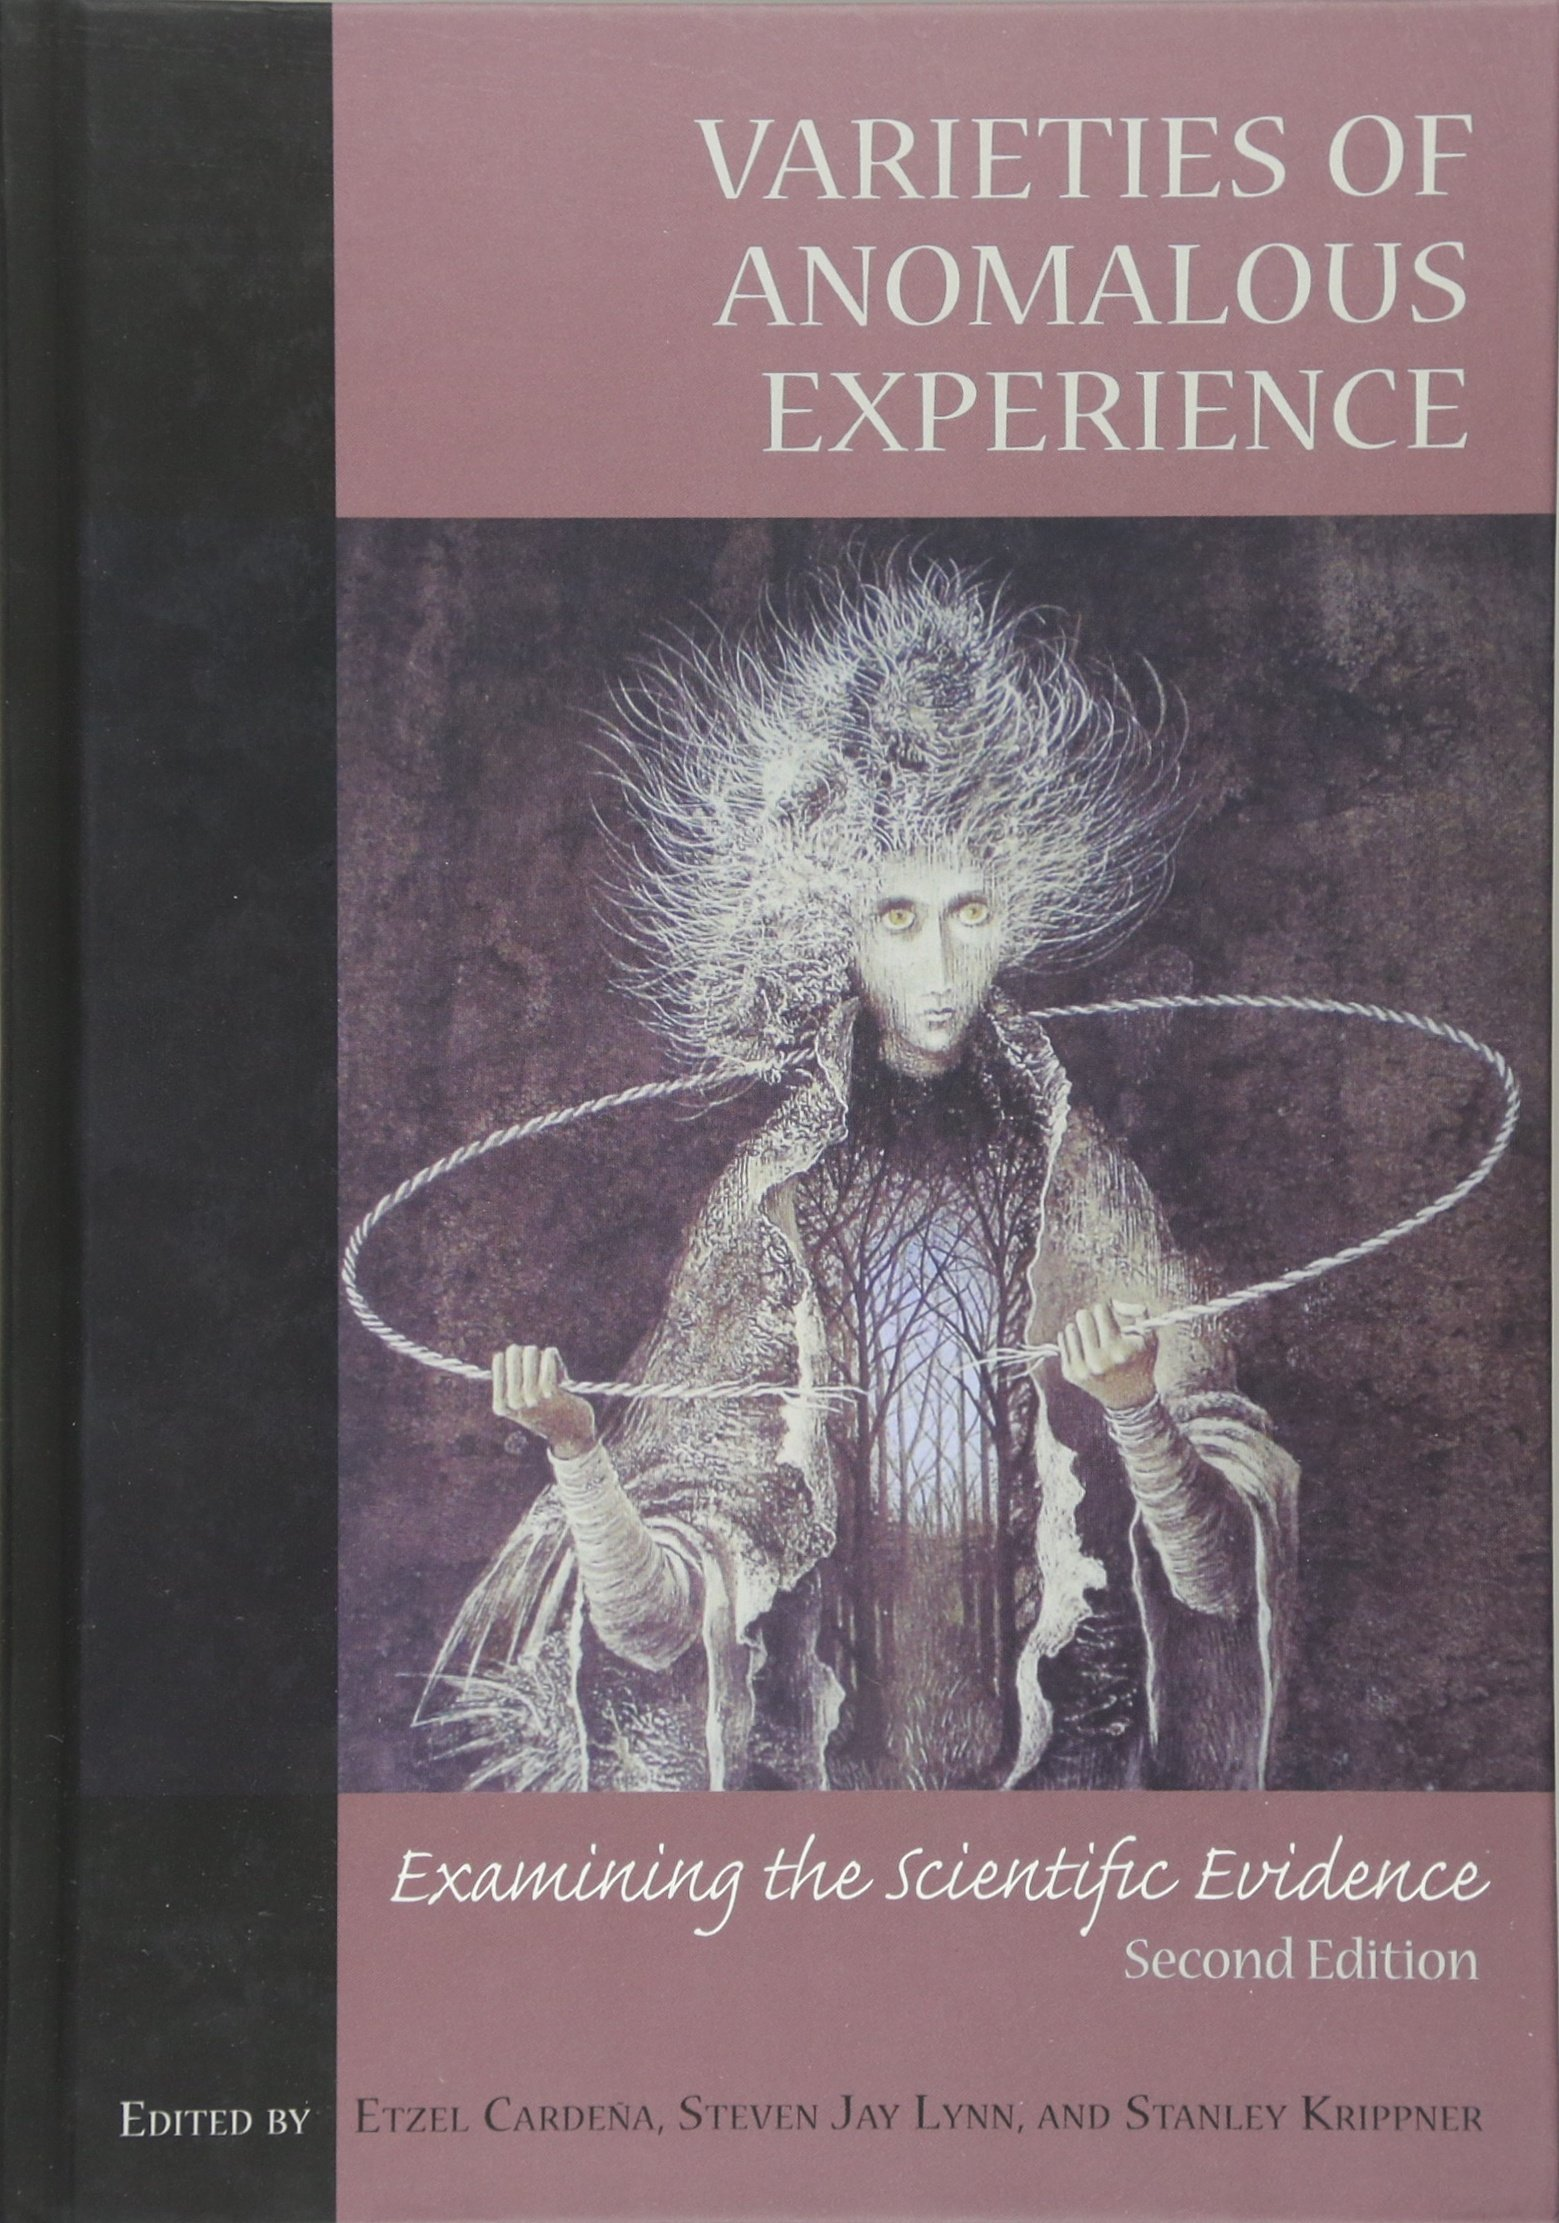 Varieties of Anomalous Experience: Examining the